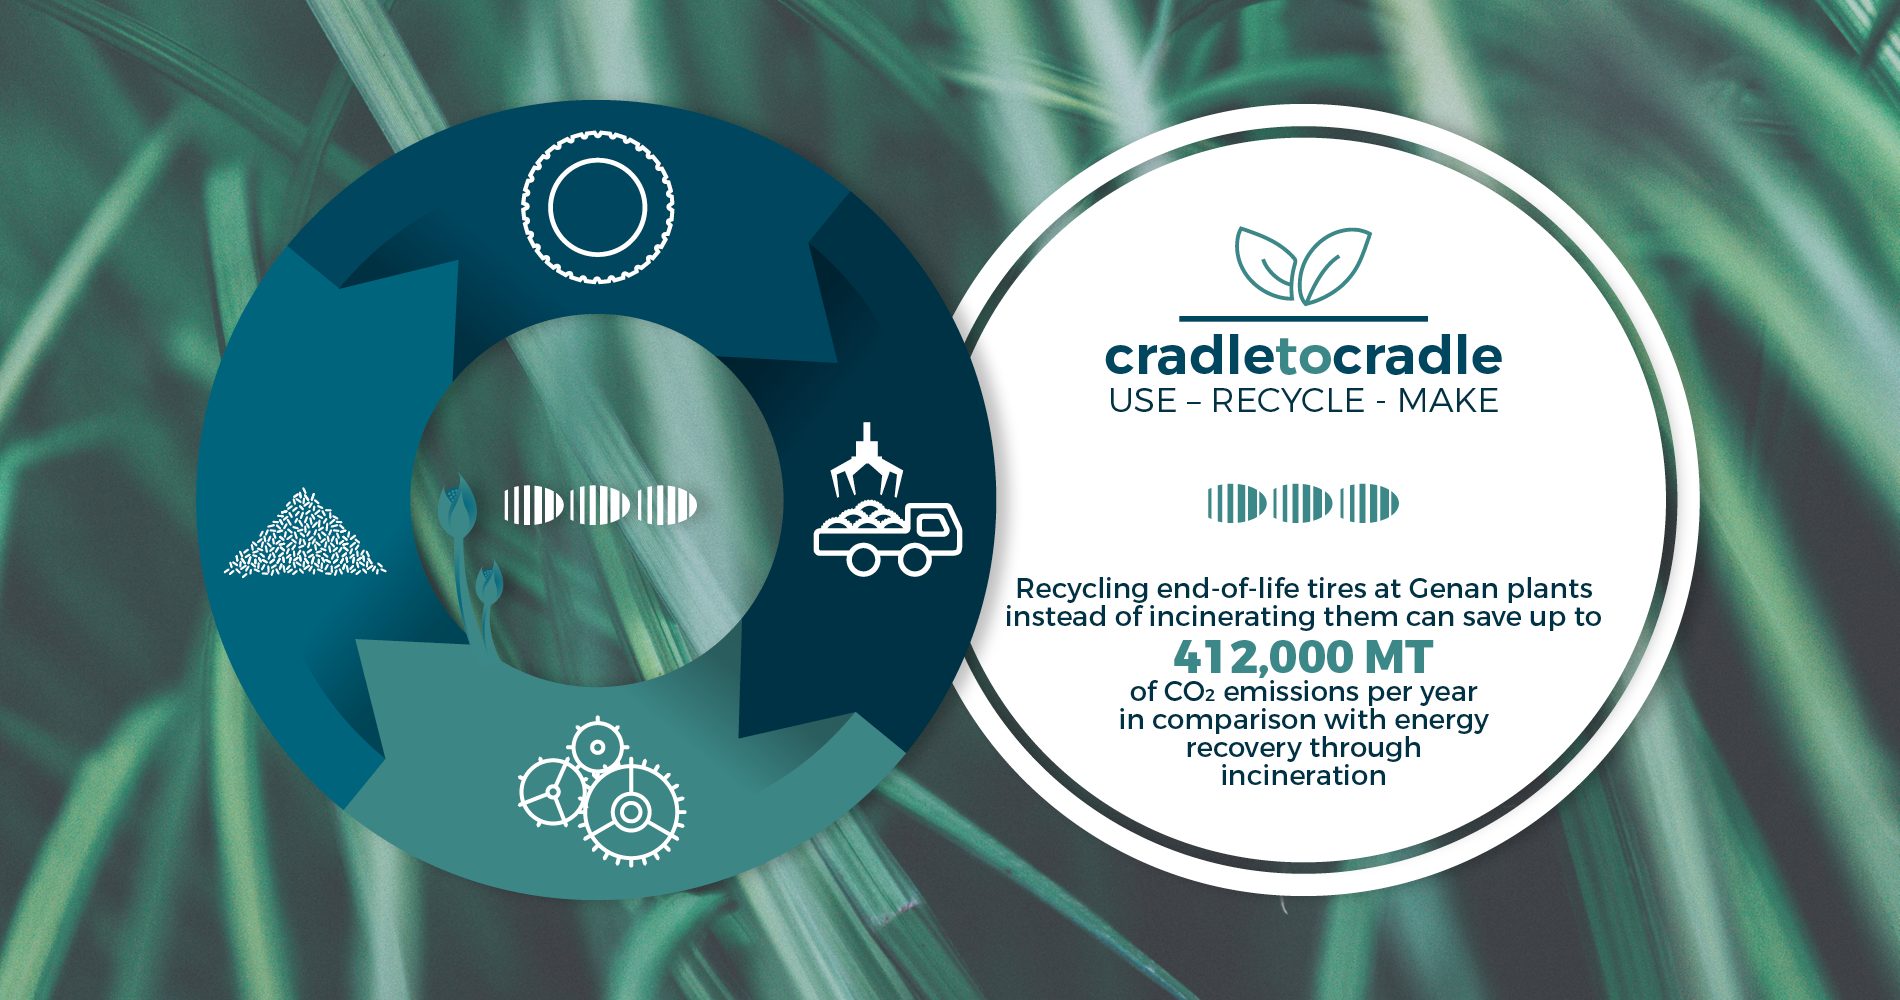 Genan cradle-to-cradle - climate-friendly recycling of end-of-life tires